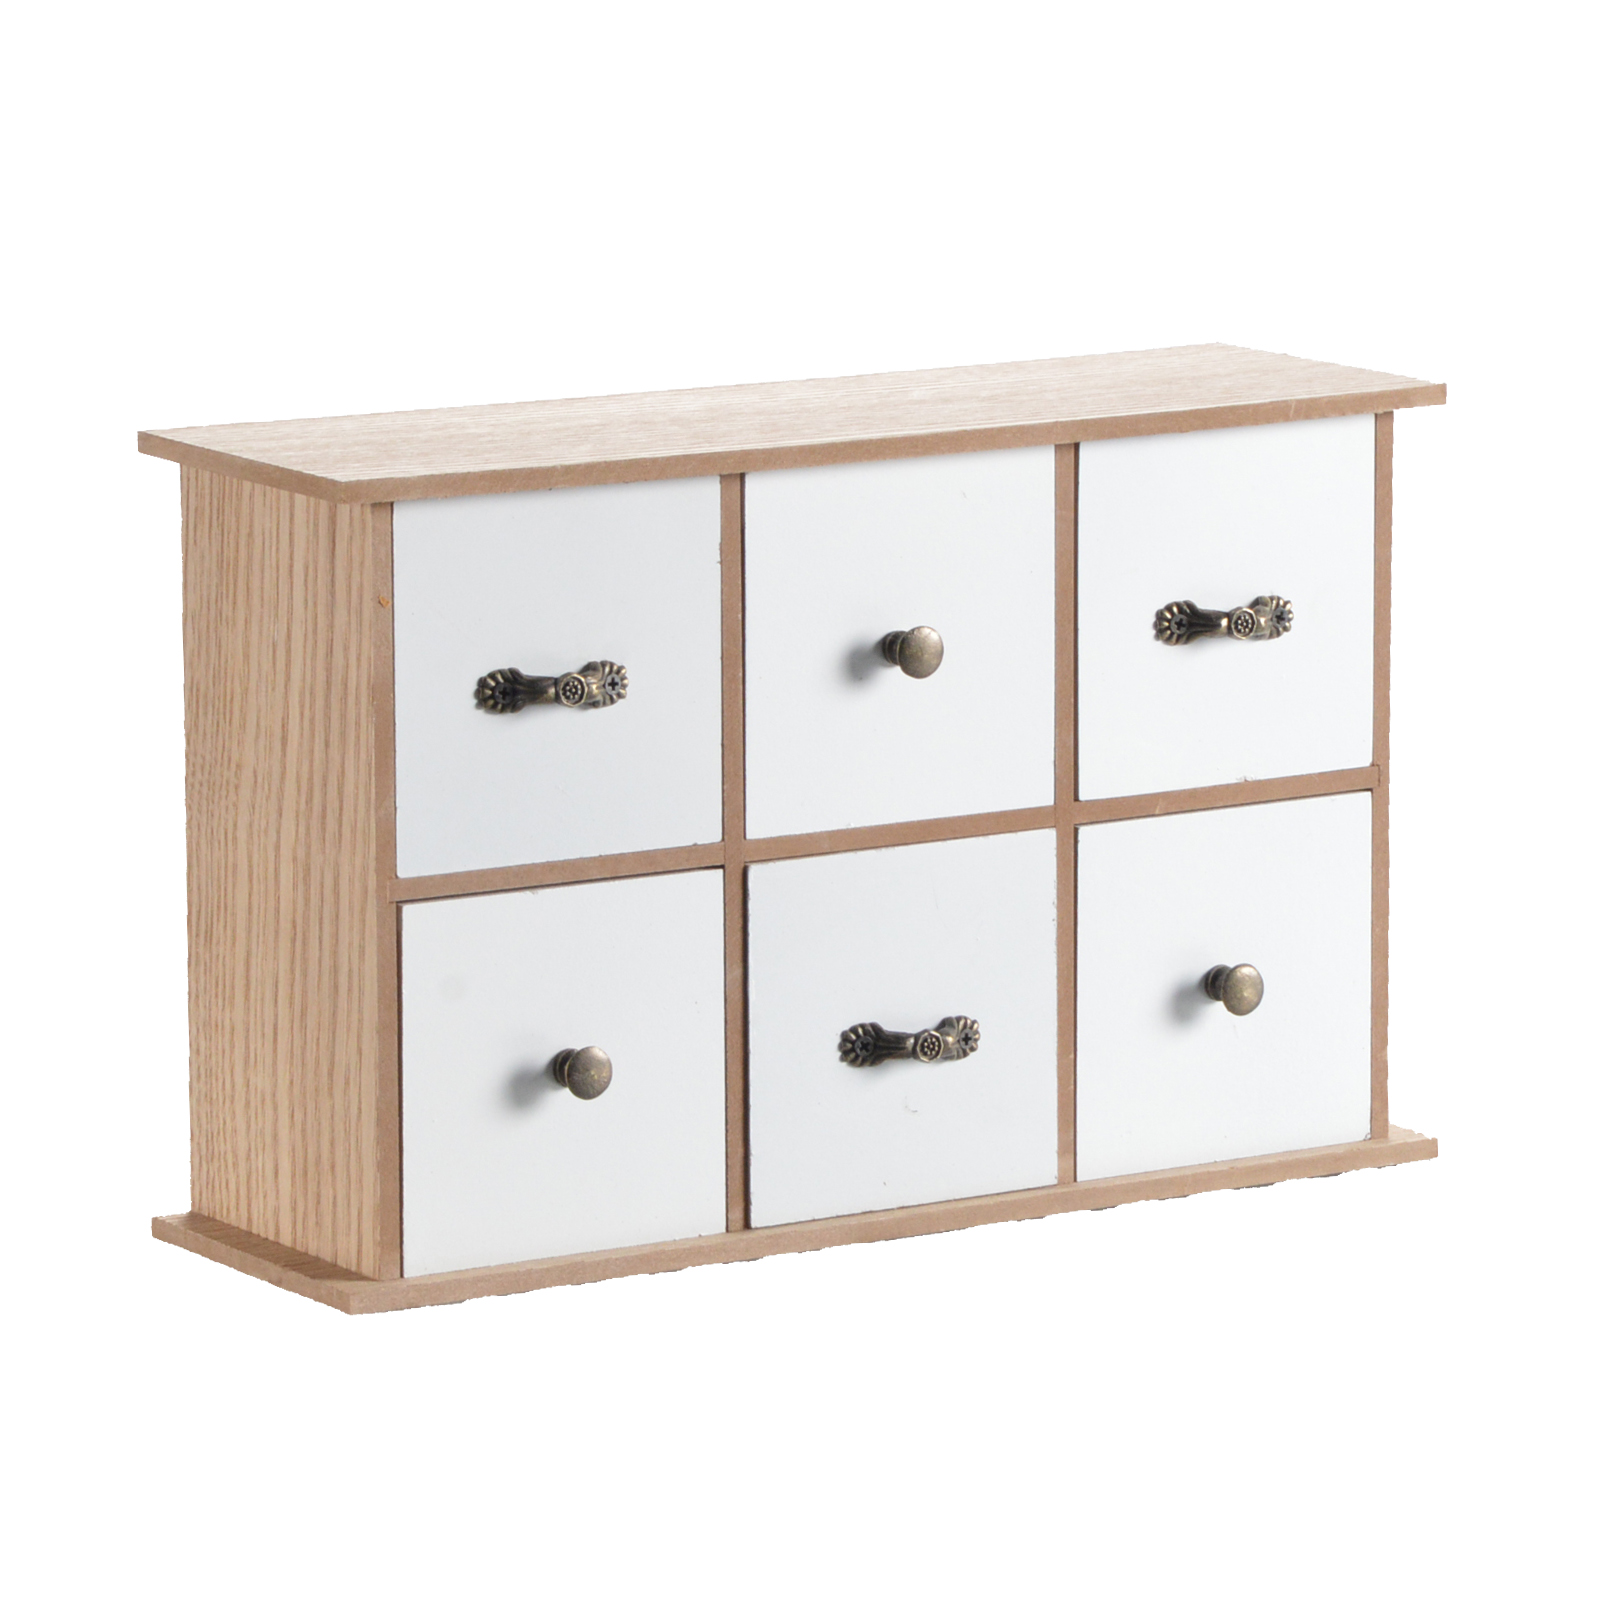 mini kommode phoenix sideboard schmuckkasten holz shabby schmuck aufbewahrung. Black Bedroom Furniture Sets. Home Design Ideas